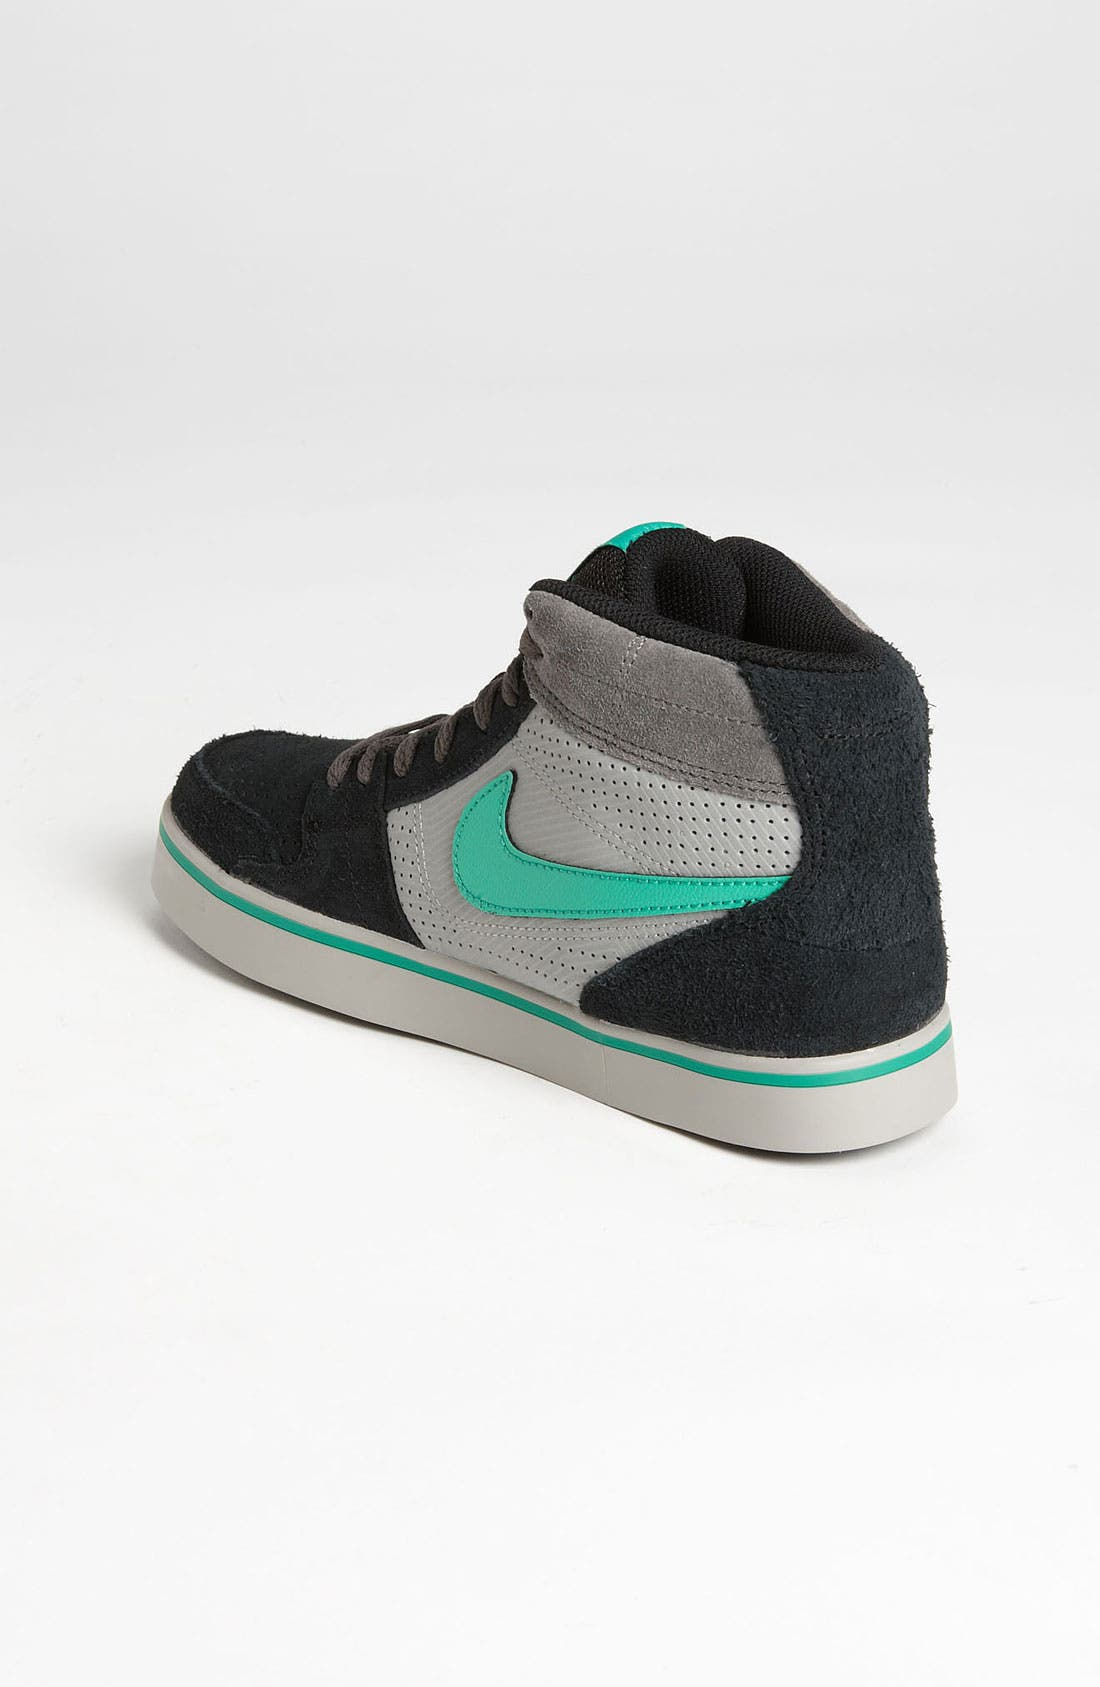 Alternate Image 2  - Nike 'Ruckus Mid Jr. 6.0' Sneaker (Toddler, Little Kid & Big Kid)